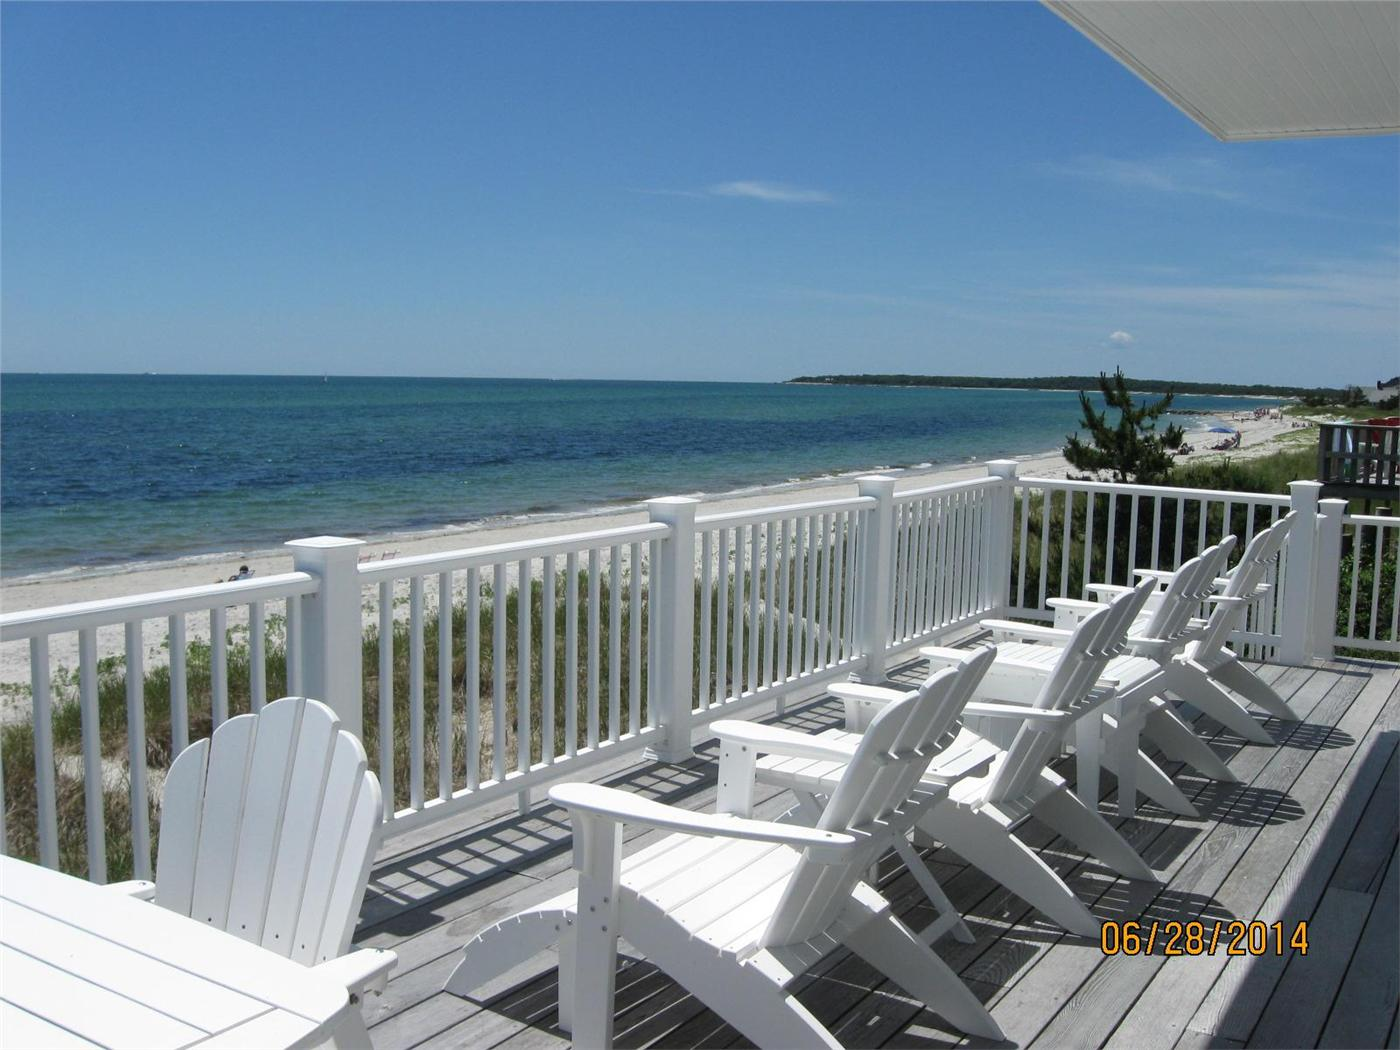 Yarmouth Vacation Rental home in Cape Cod MA 02673 On